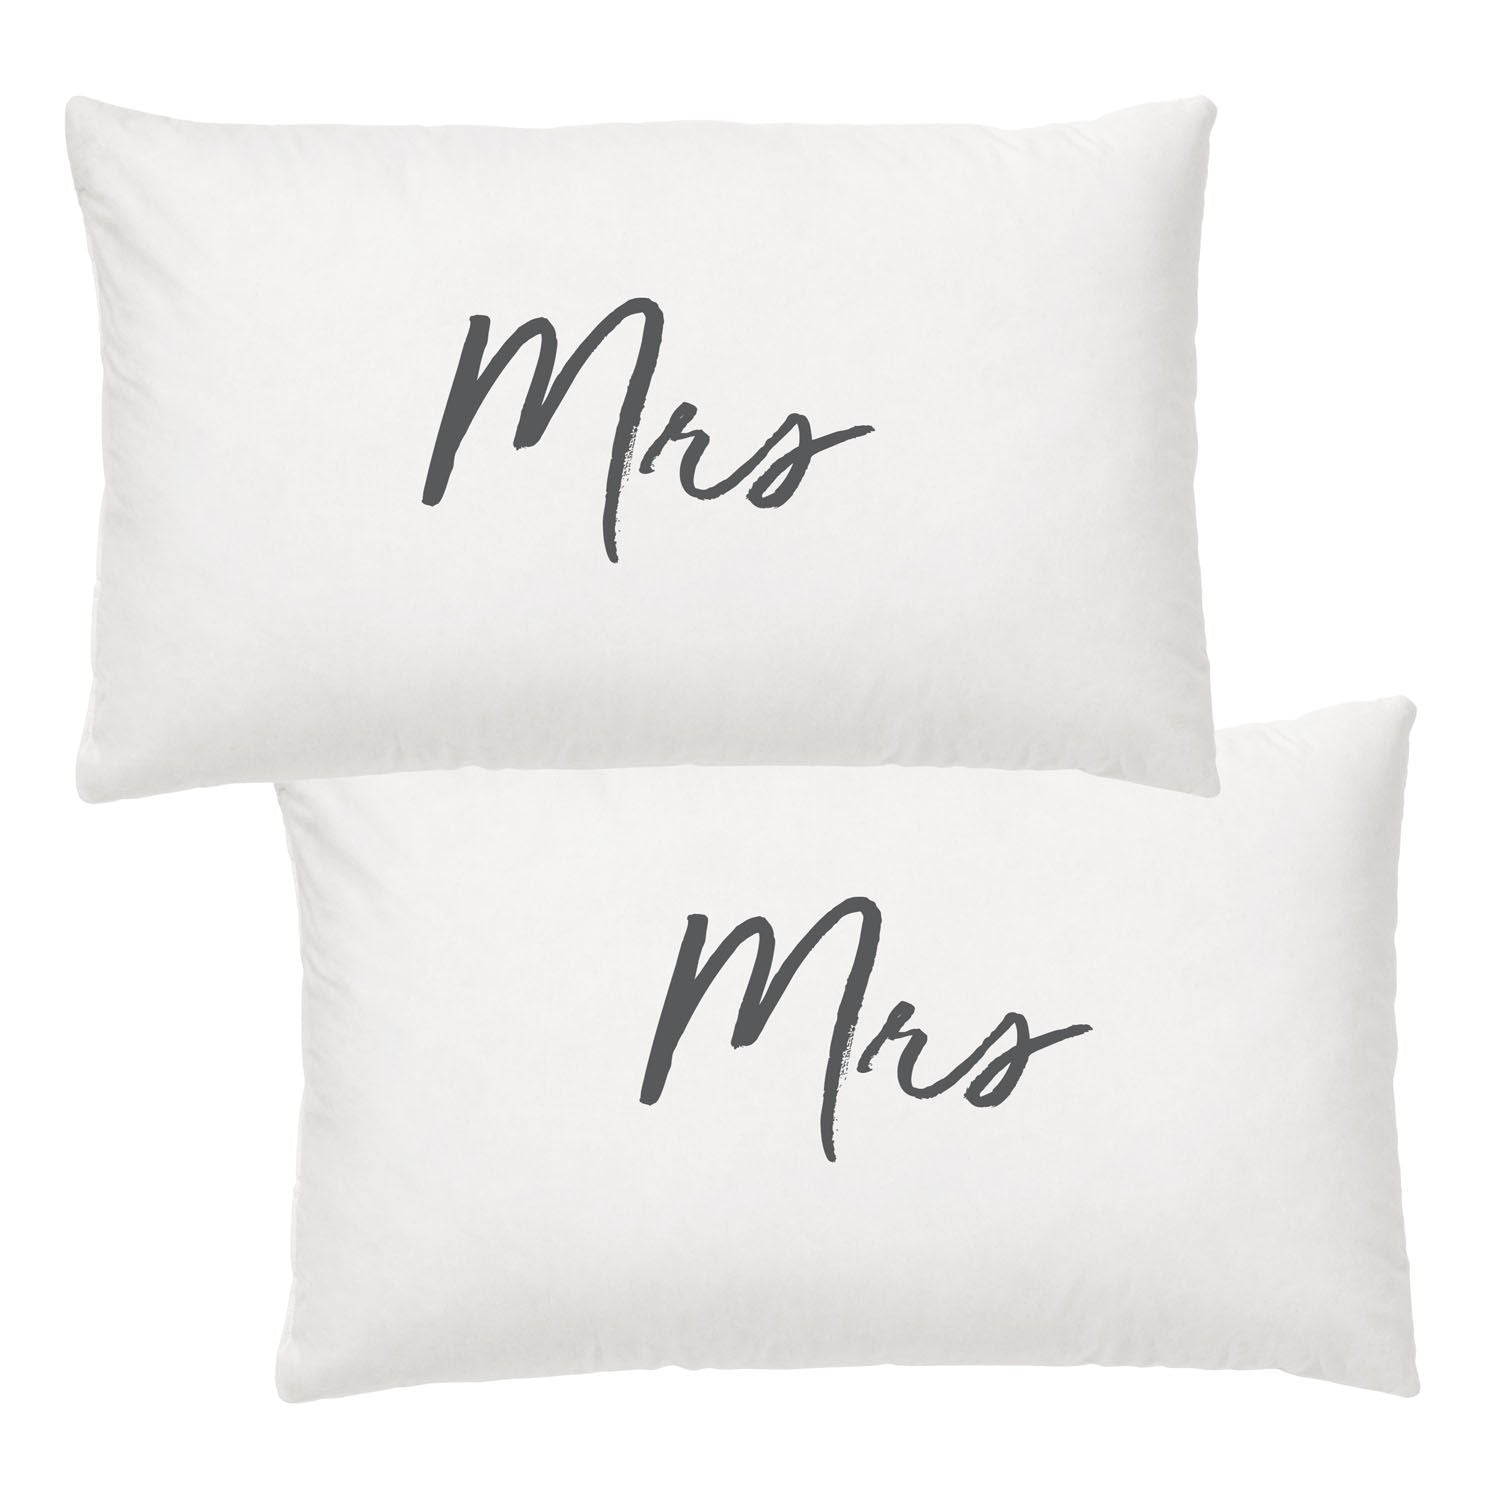 Mrs & Mrs Pillowcase